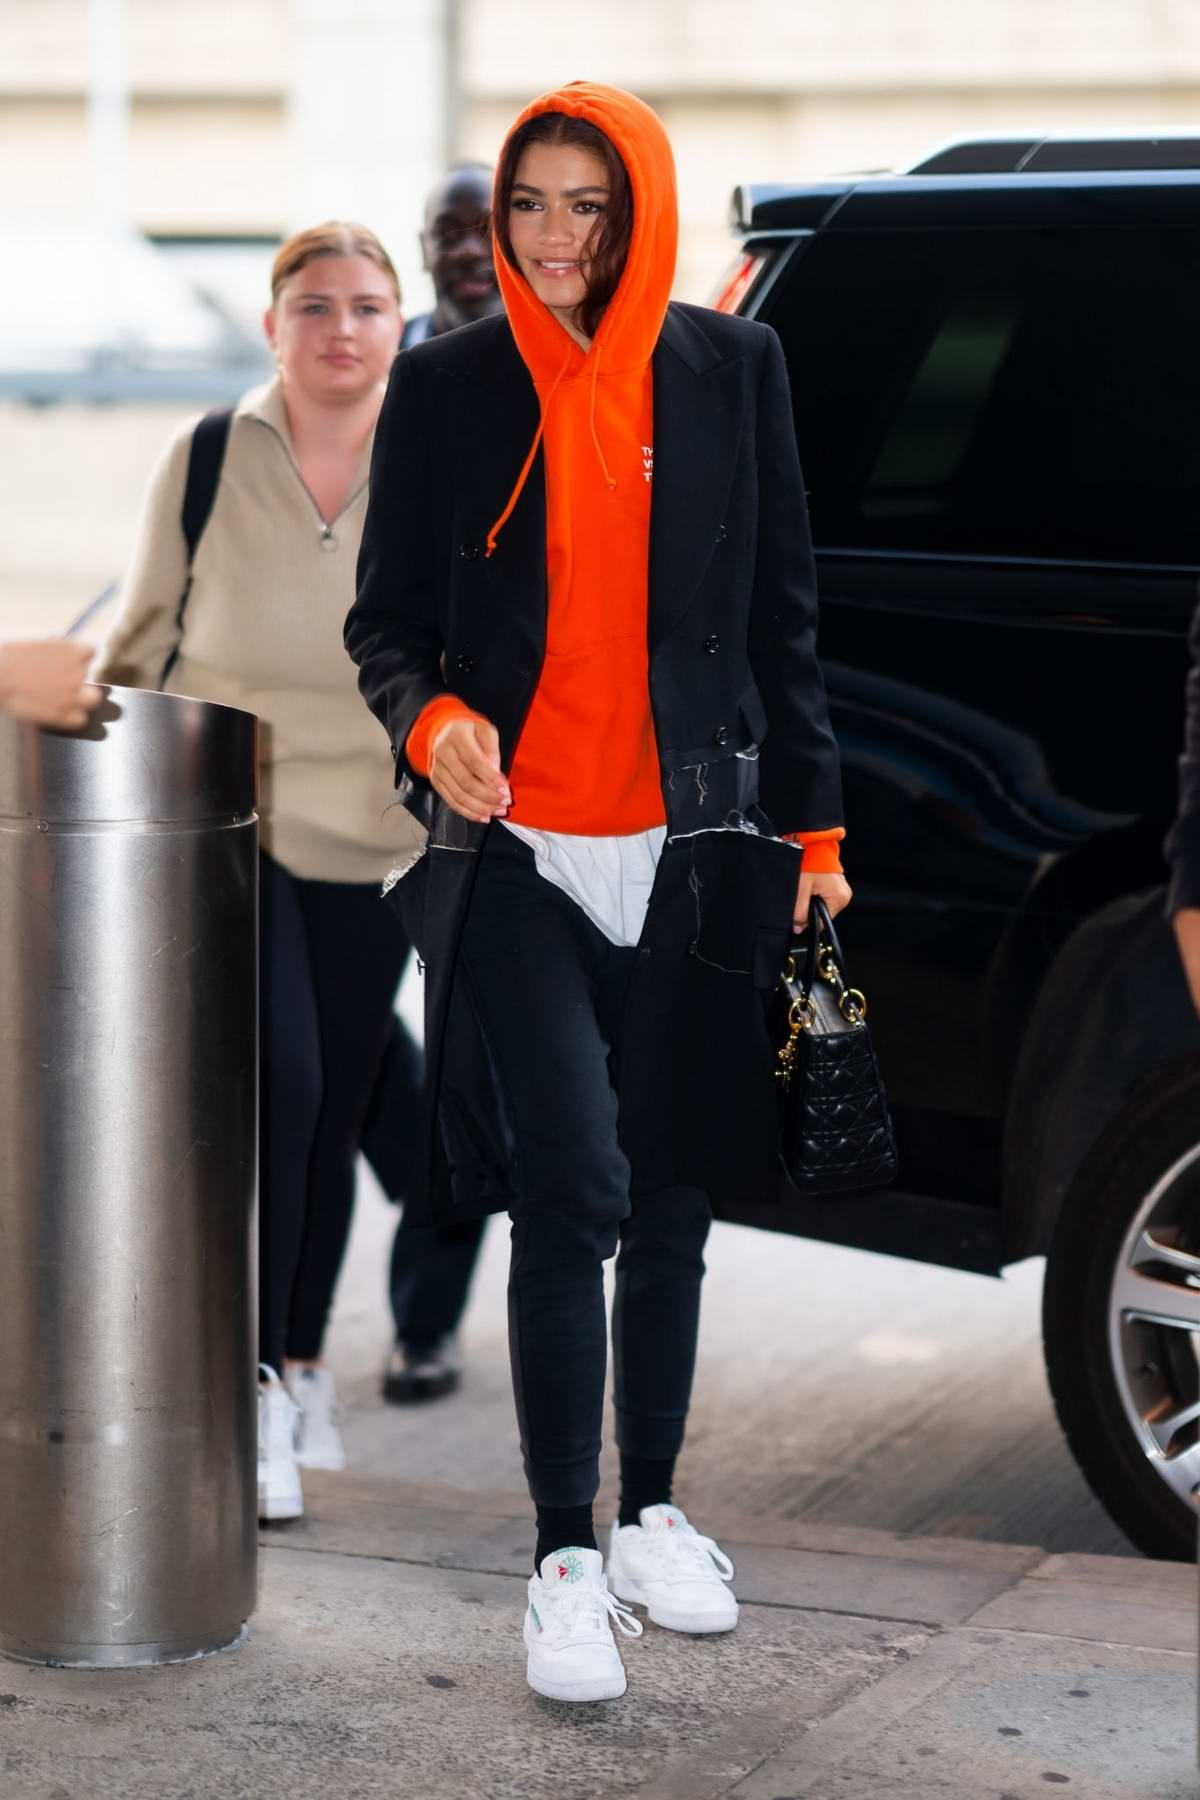 Zendaya arrives in a red hoodie at JFK Airport in New York City